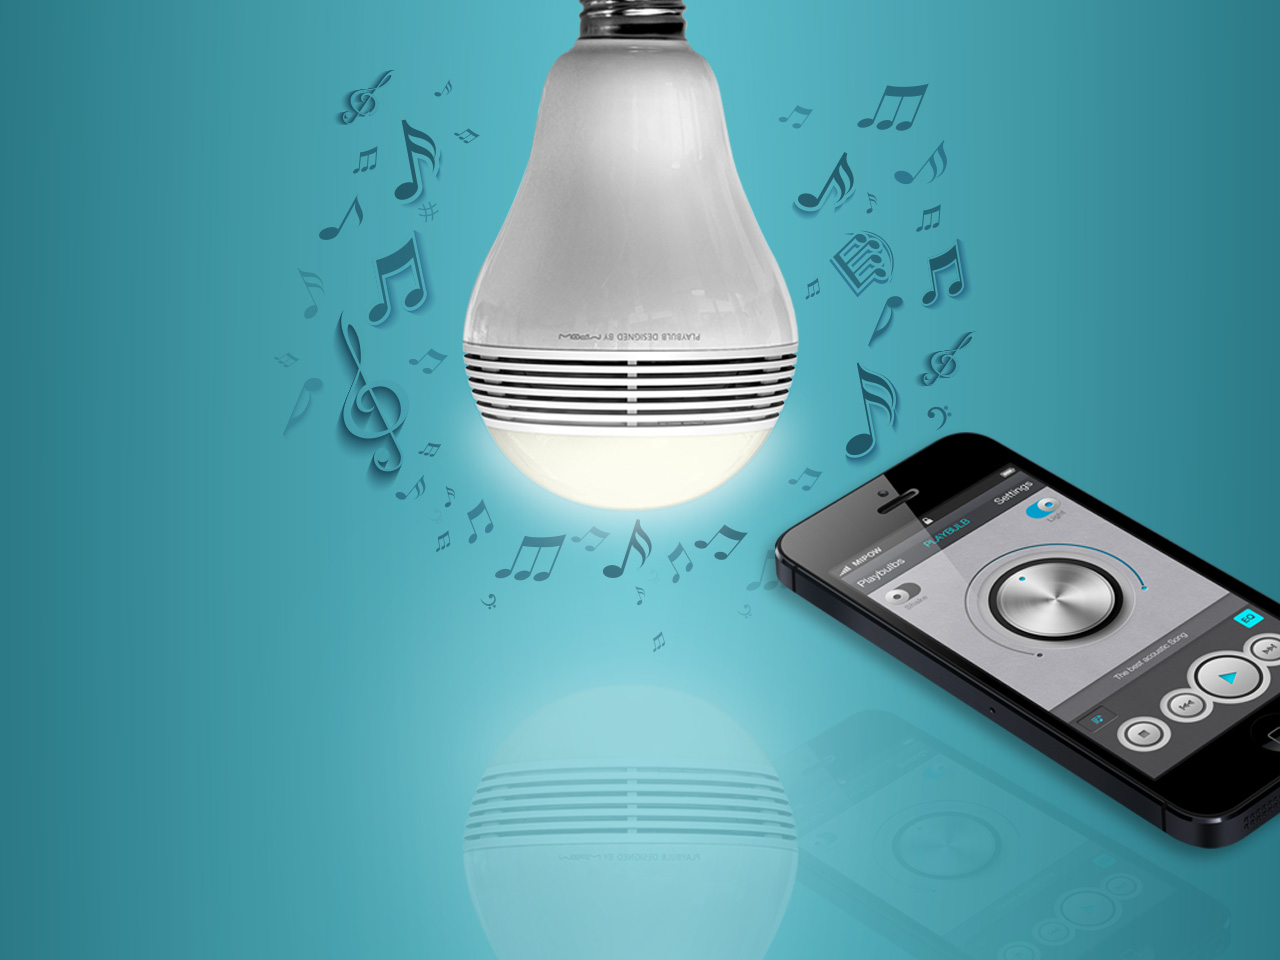 PLAYBULB - Bluetooth Smart LED speaker light